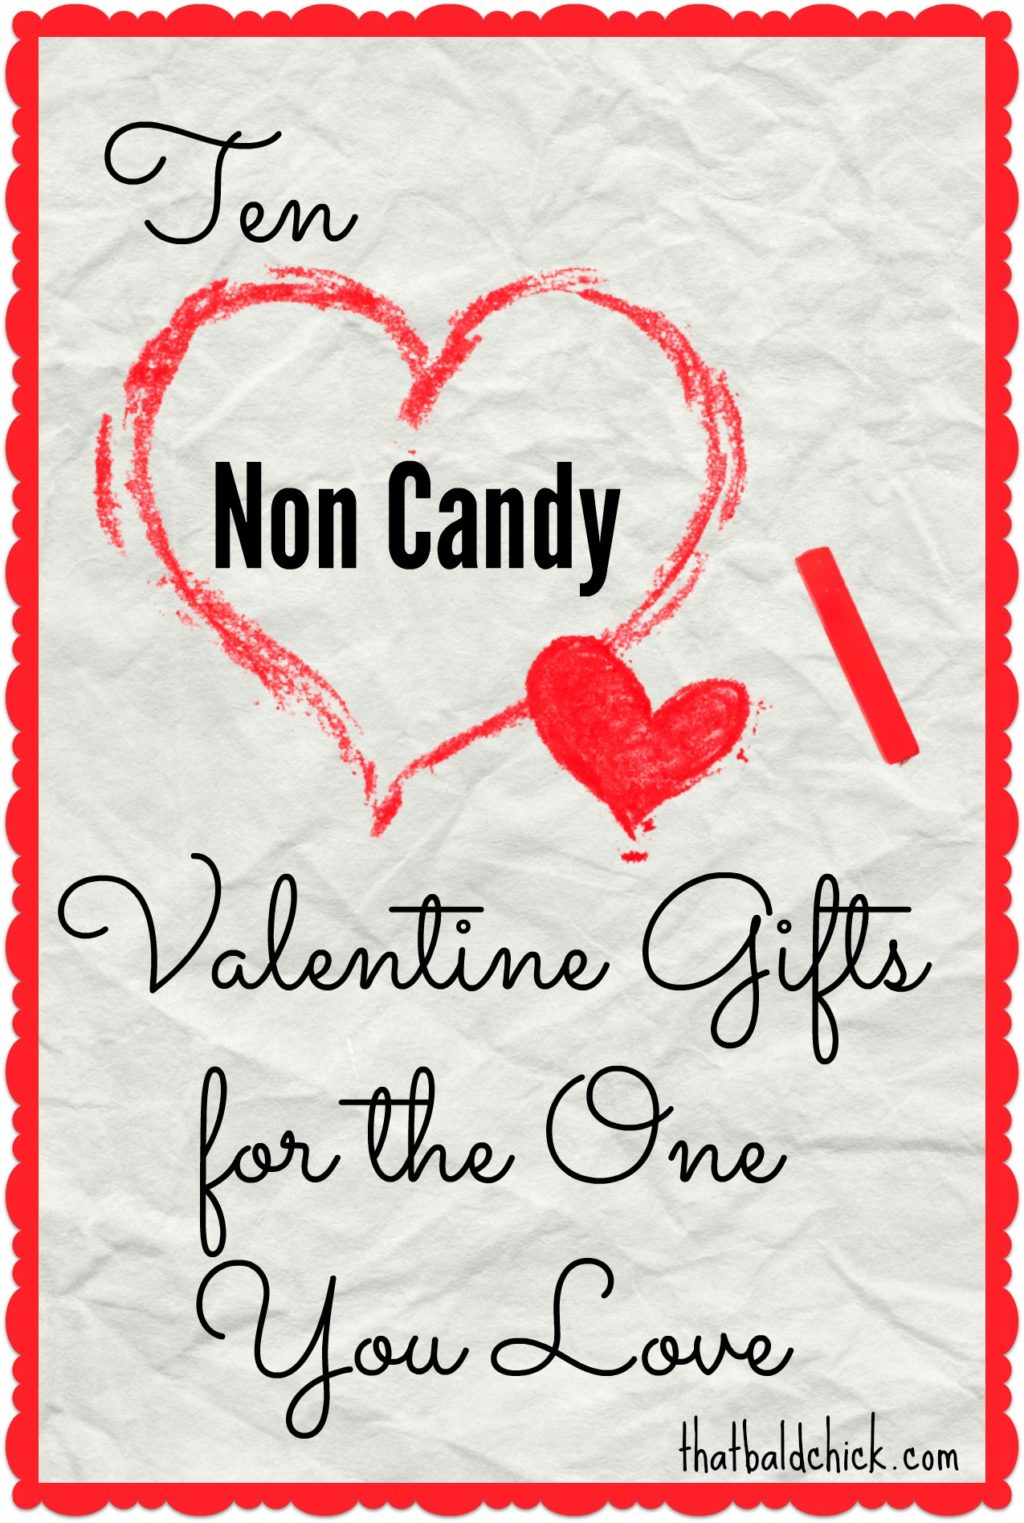 Ten Non Candy Valentine Gifts for the One You Love @thatbaldchick